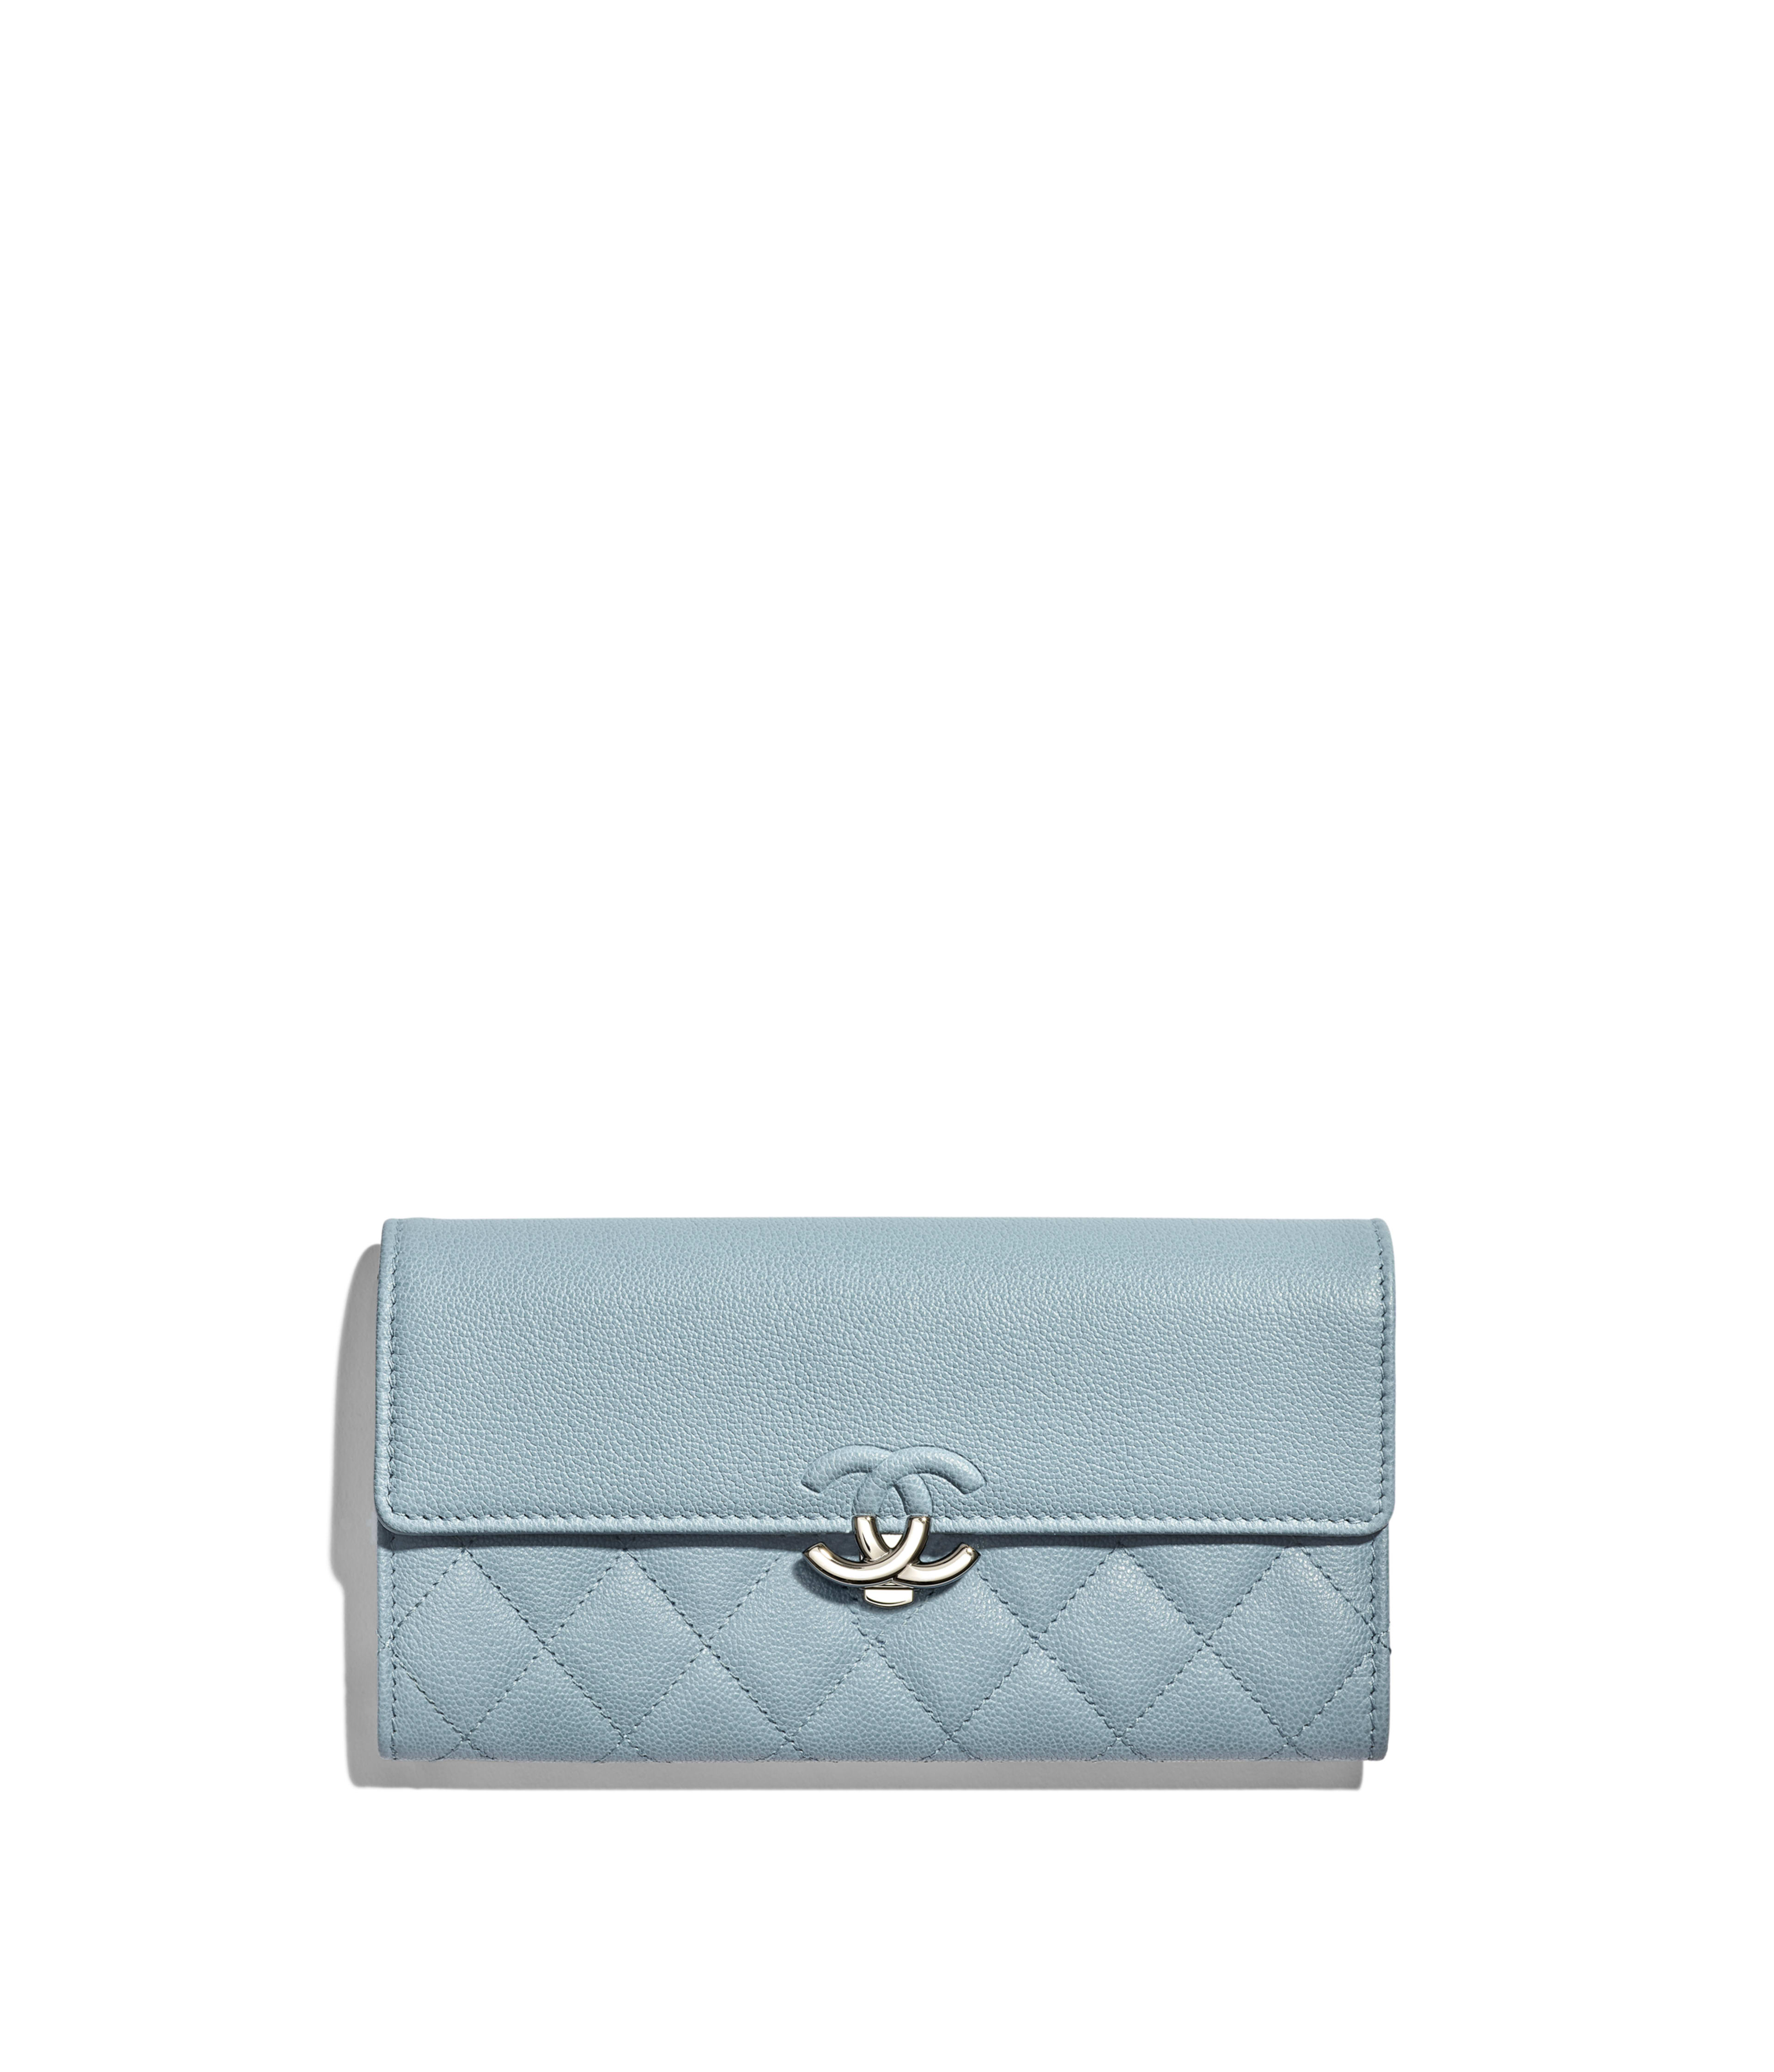 02c1c31b0cdb Long Flap Wallet Grained Calfskin & Silver-Tone Metal, Blue Ref.  A84426B00035N0418